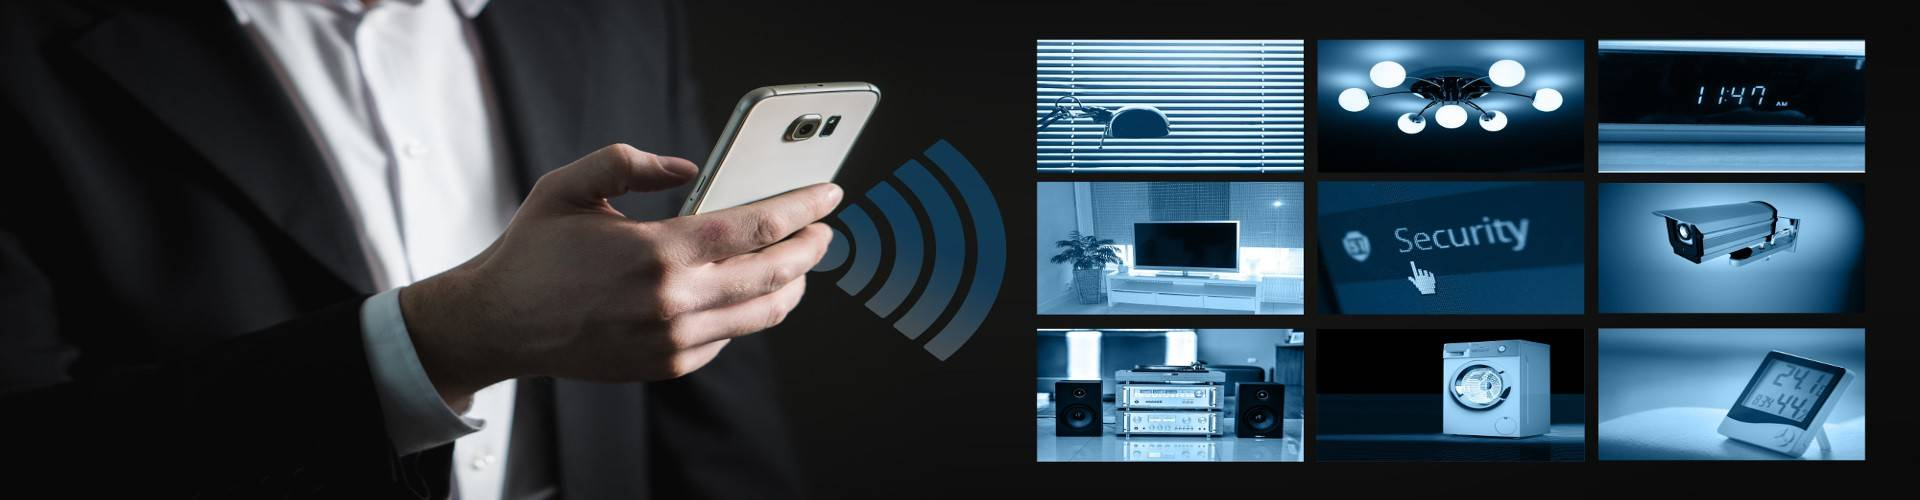 Connected Home Image